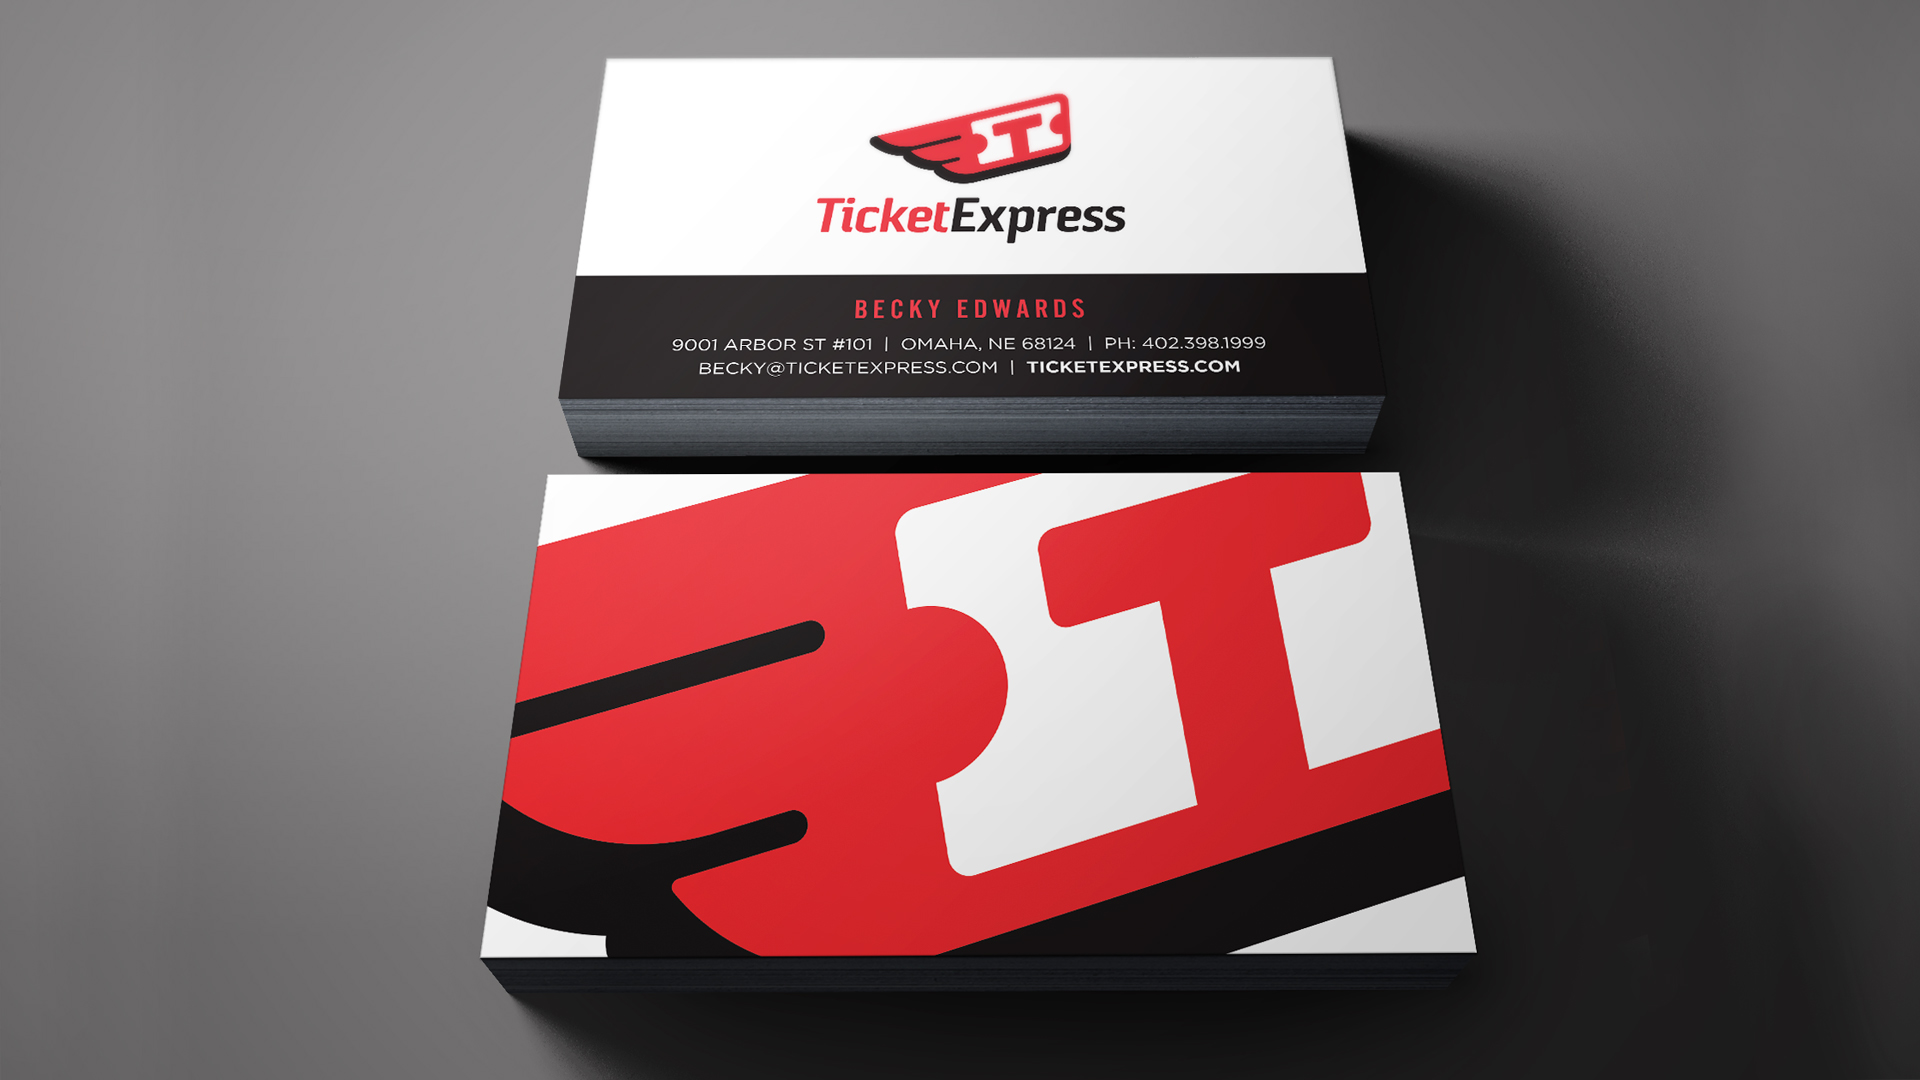 Ticket Express business card by Damon Andersen, phoenix branding agency, consultant, expert.